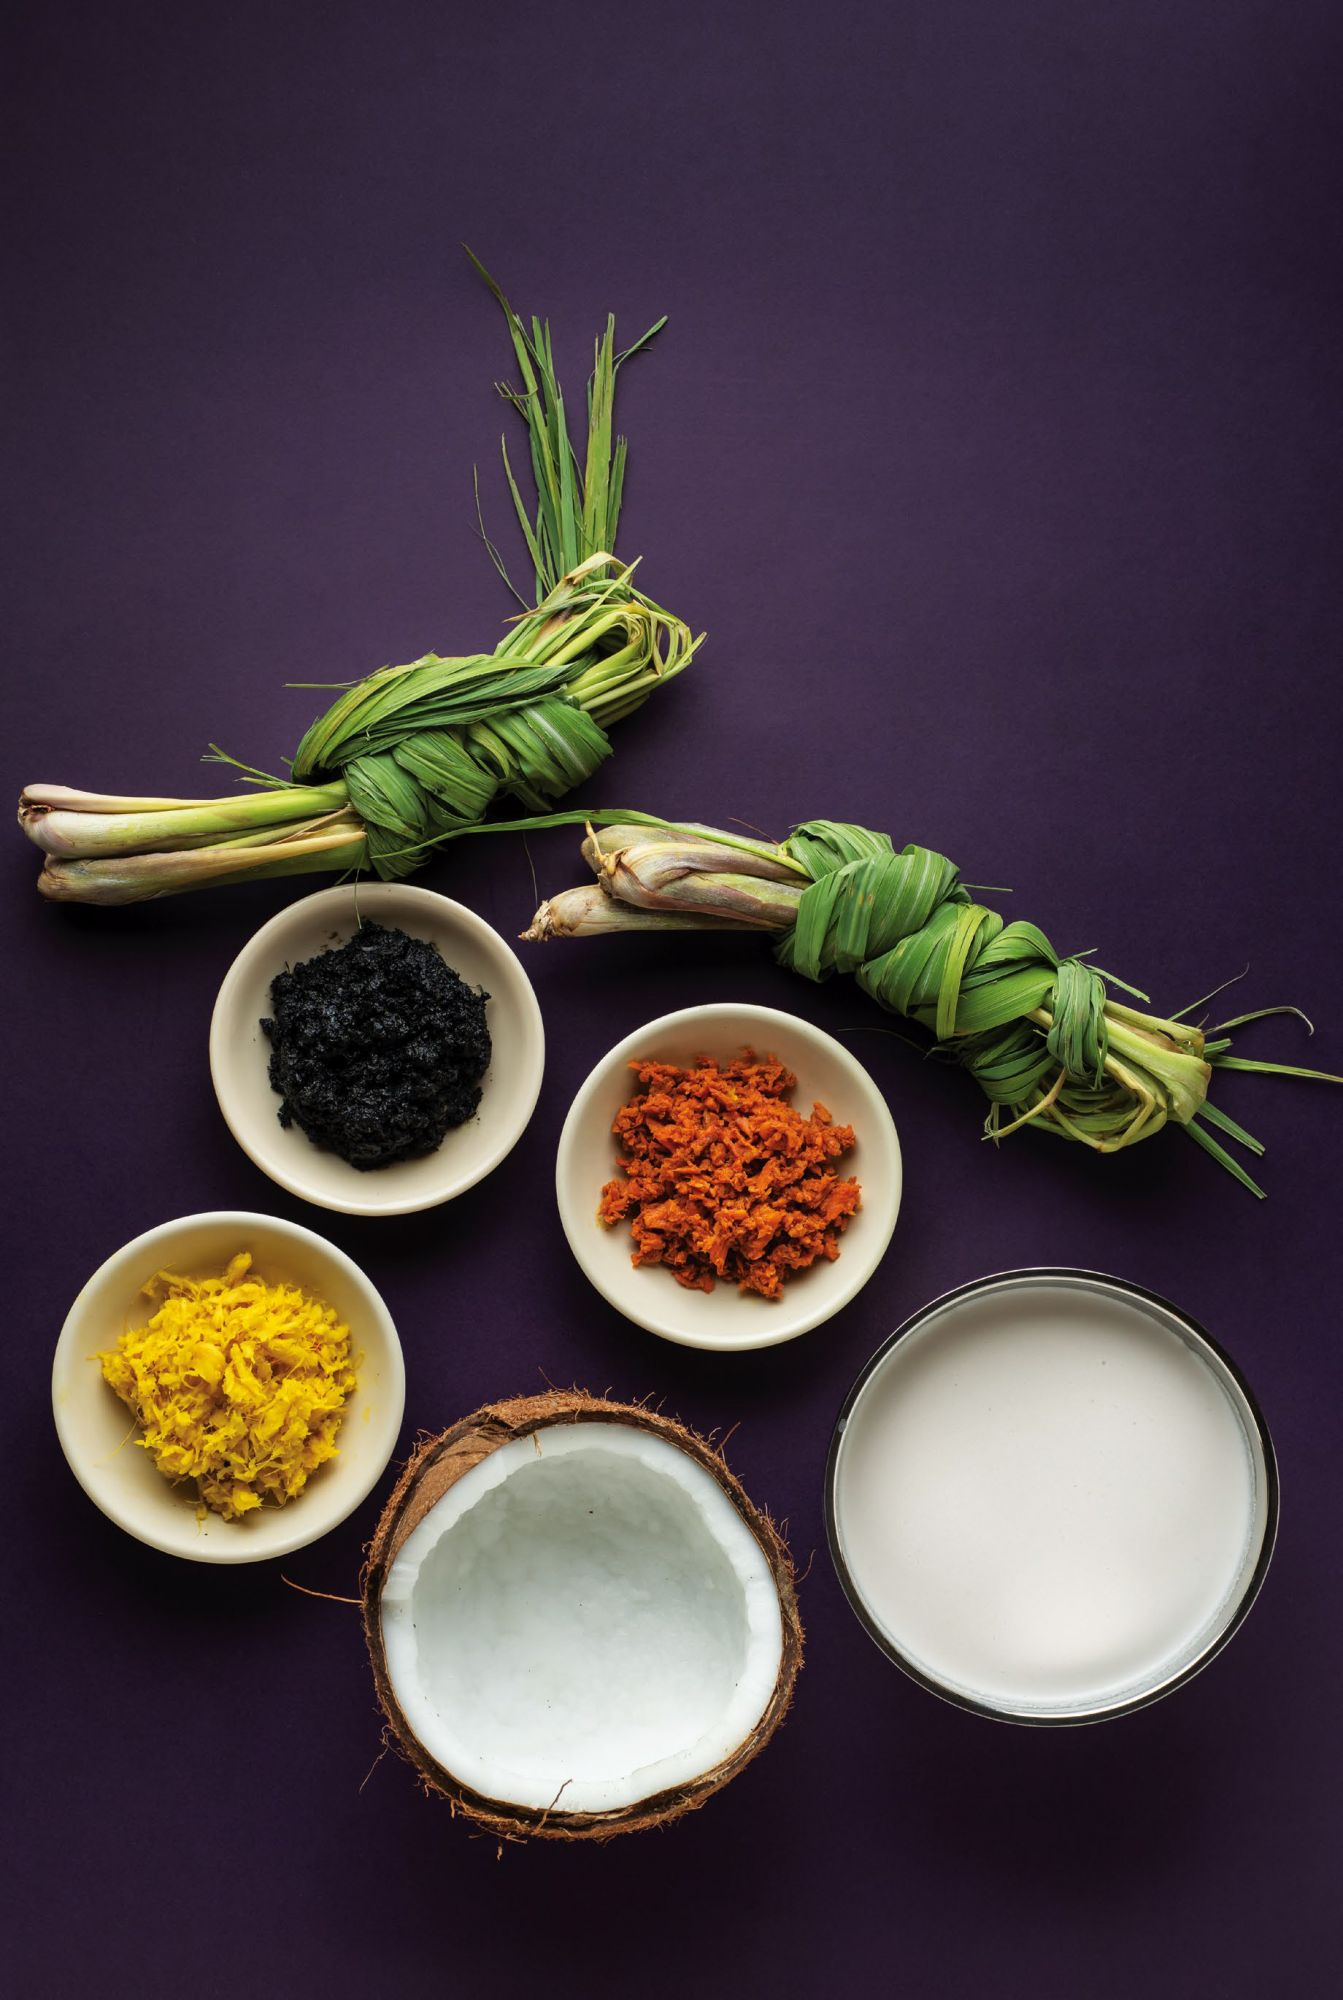 Staple spices and ingredients in a Muslim kitchen: (anticlockwise) lemongrass, ground turmeric, pamapa itum, crushed ginger, coconut oil in half a husk, coconut milk